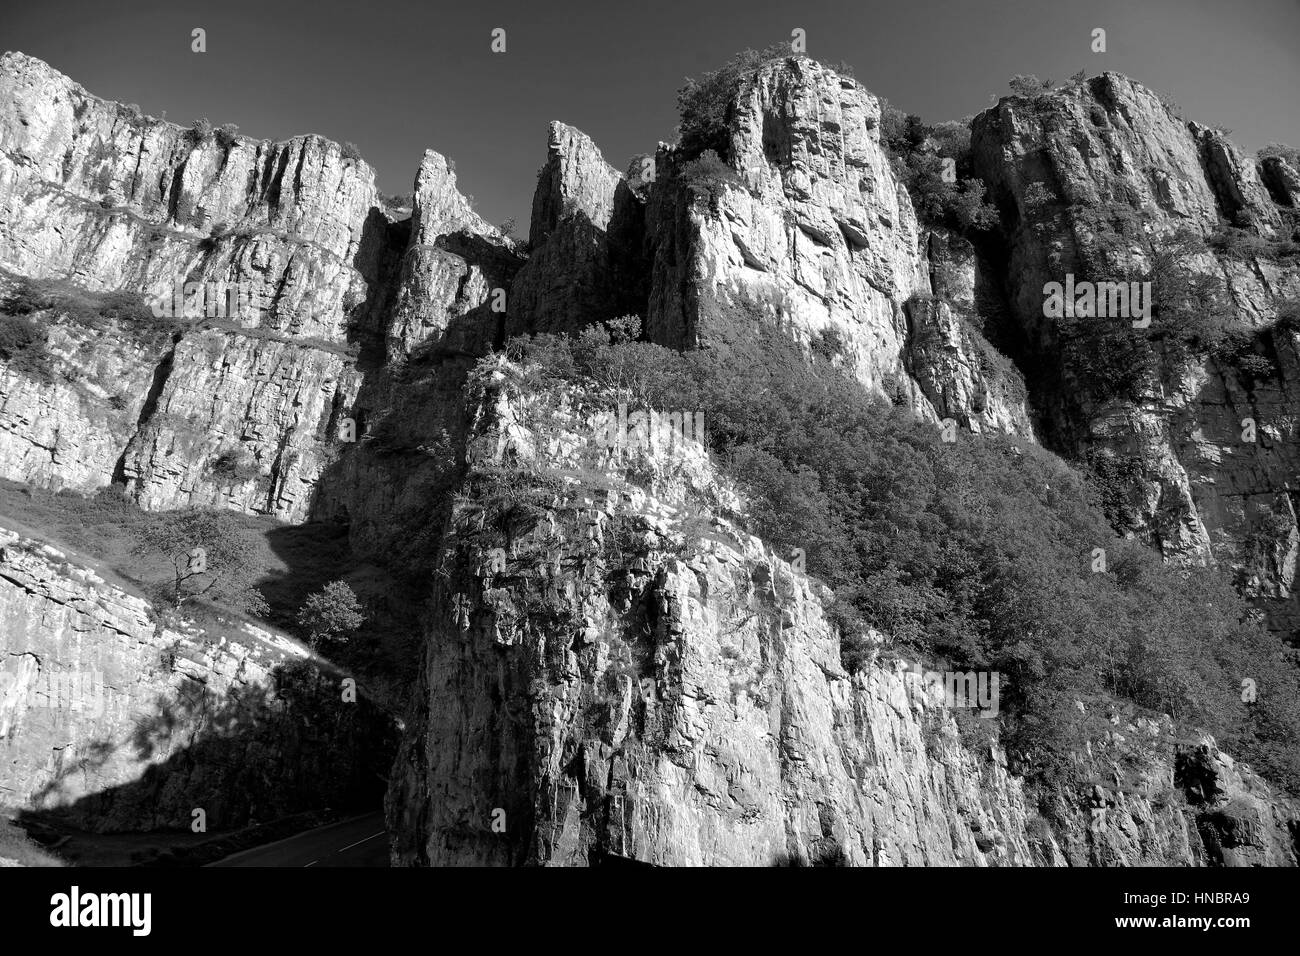 Summer view over the Limestone cliffs of Cheddar Gorge, Mendip Hills, Somerset County, England, UK - Stock Image